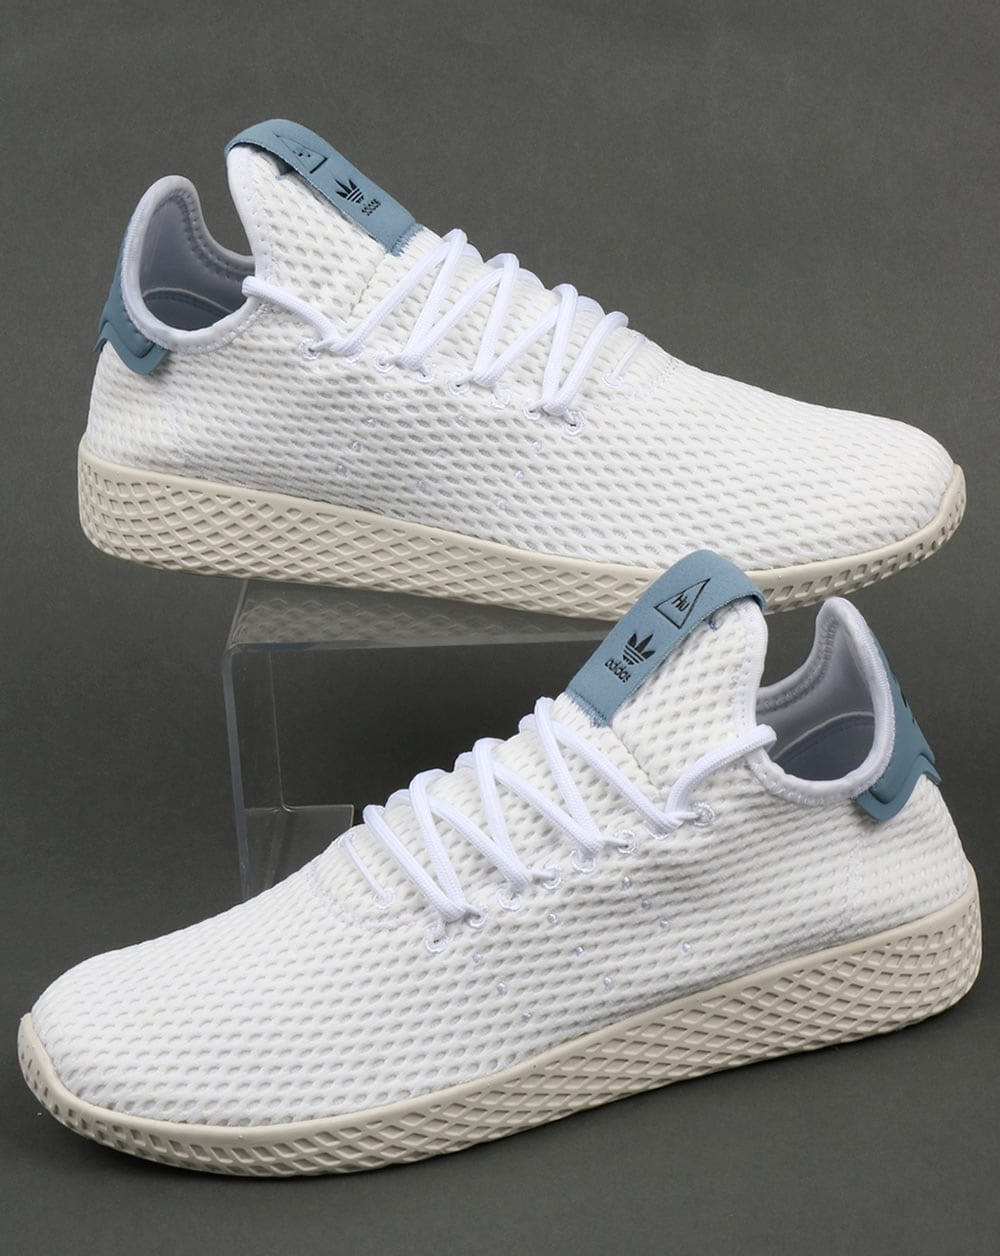 865a4c9f5 adidas Trainers Adidas PW Tennis HU Trainers White Tactile Blue